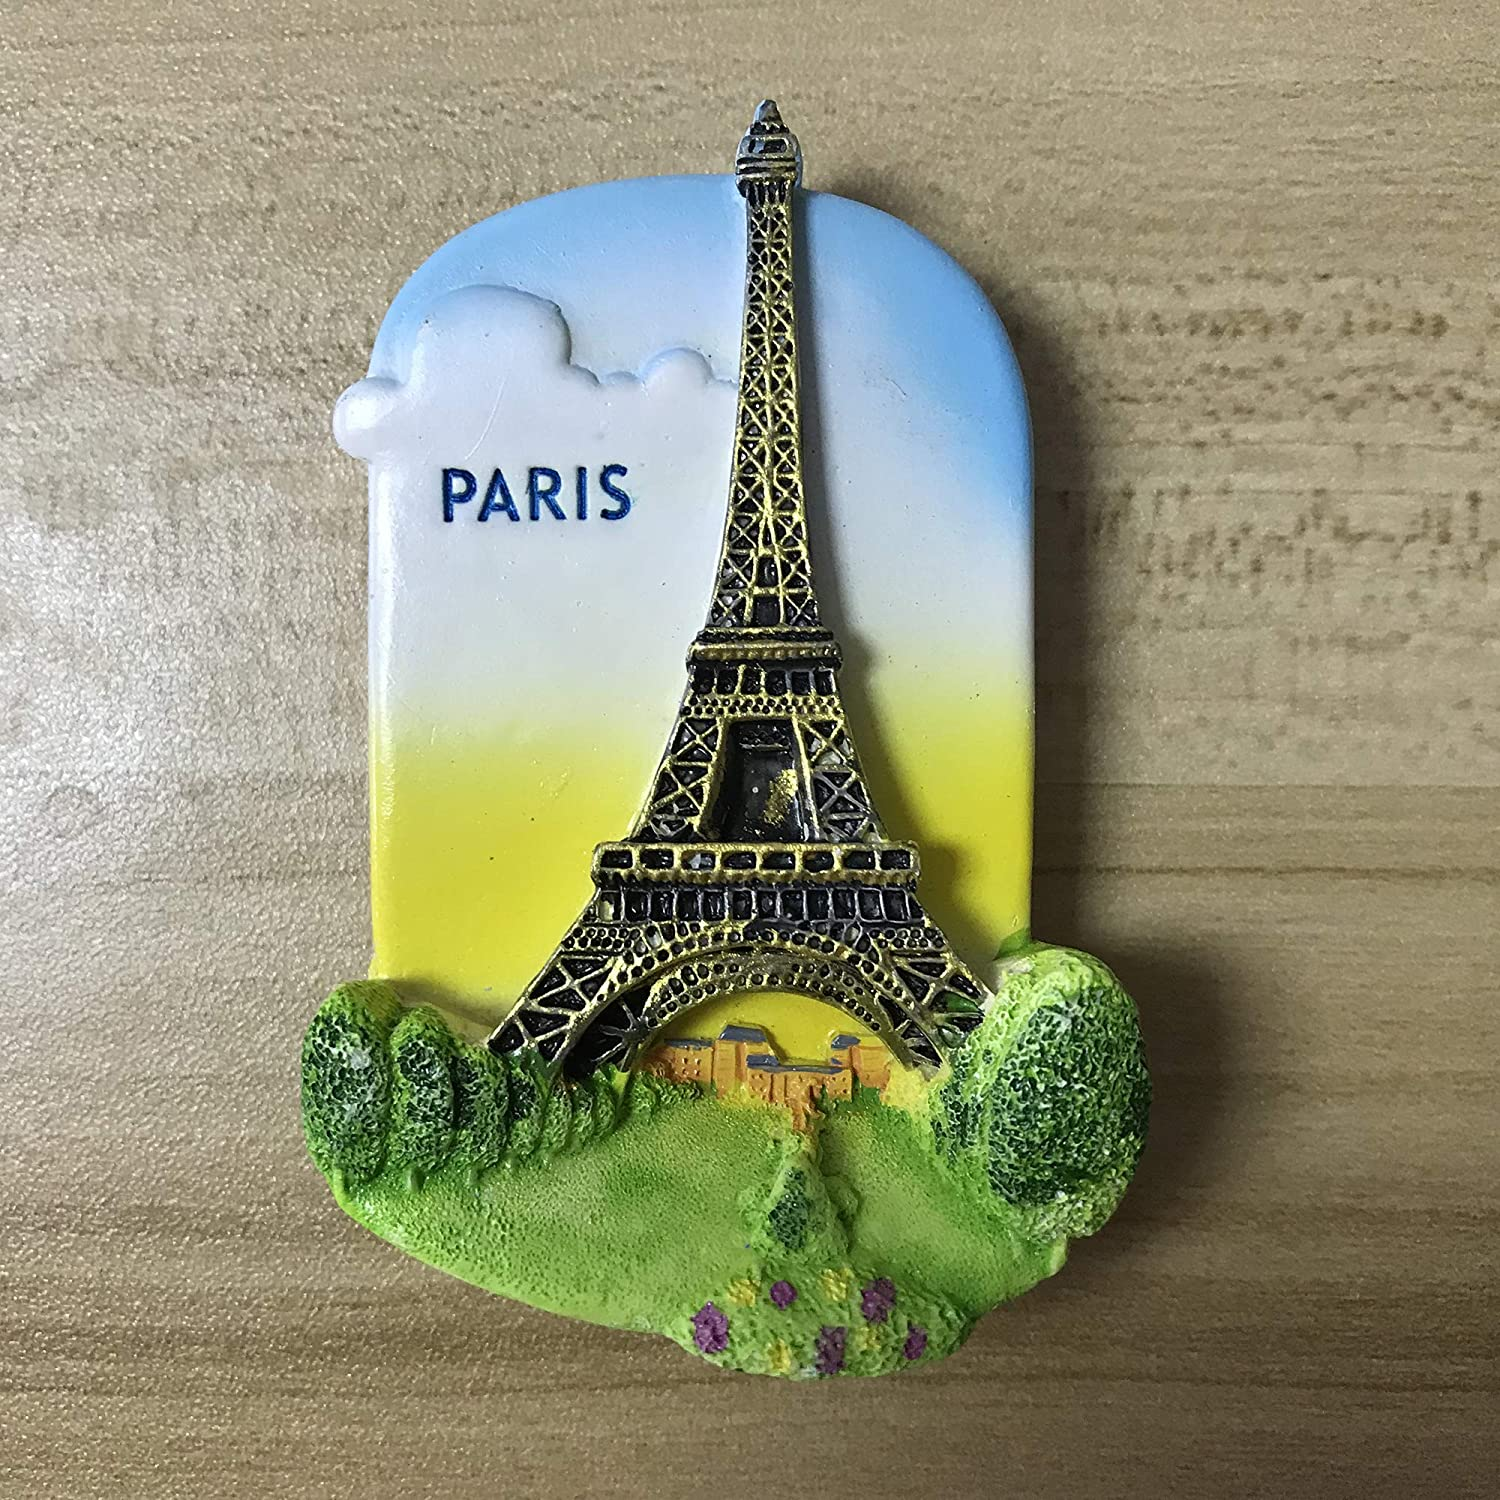 Learning Education Amsterdam Holland 3d Refrigerator Magnet Beauty Travel Sticker Souvenirs Home Kitchen Decoration Holland Fridge Magnet From China Toys Games Mceadvisory Com